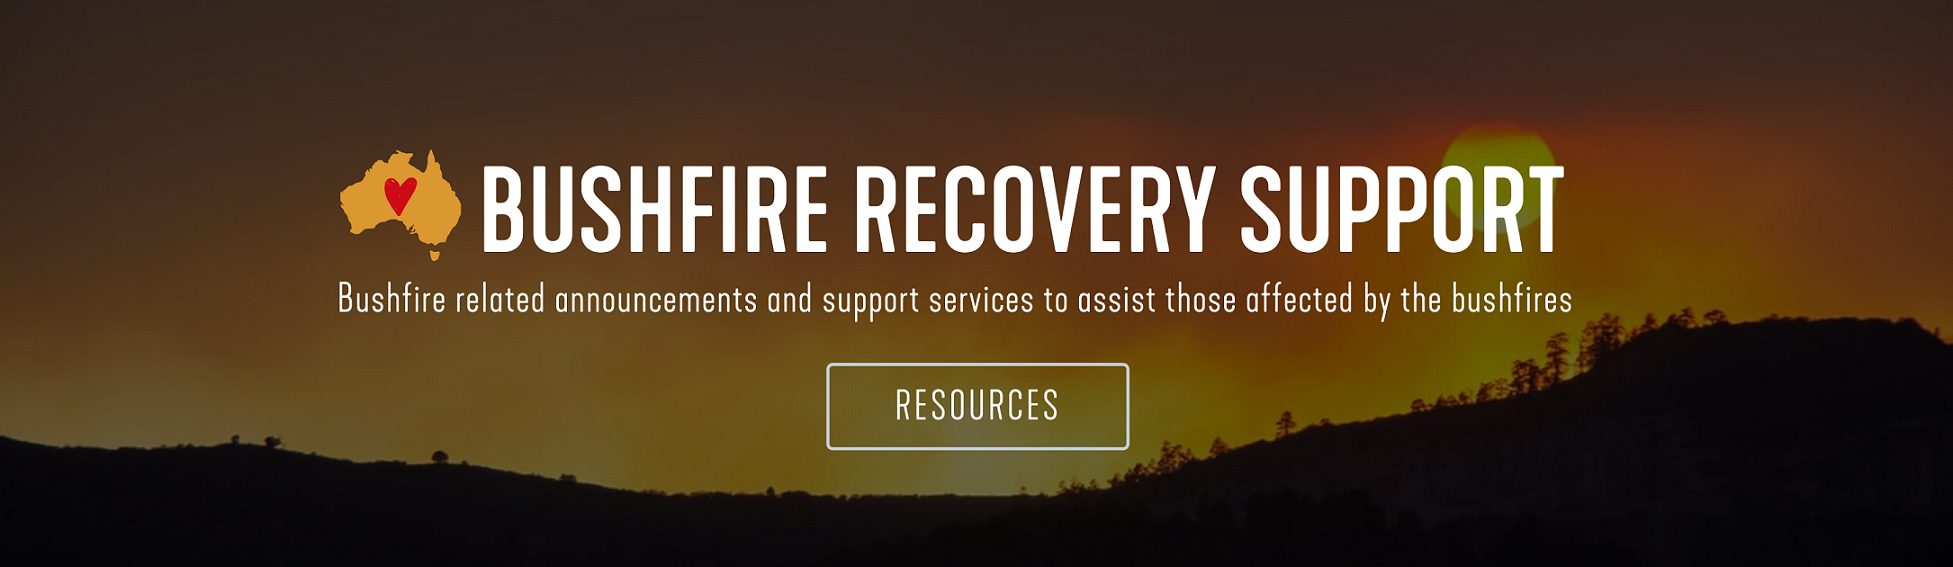 Bushfire Support Resources - Home | National Employment Services Association - NESA